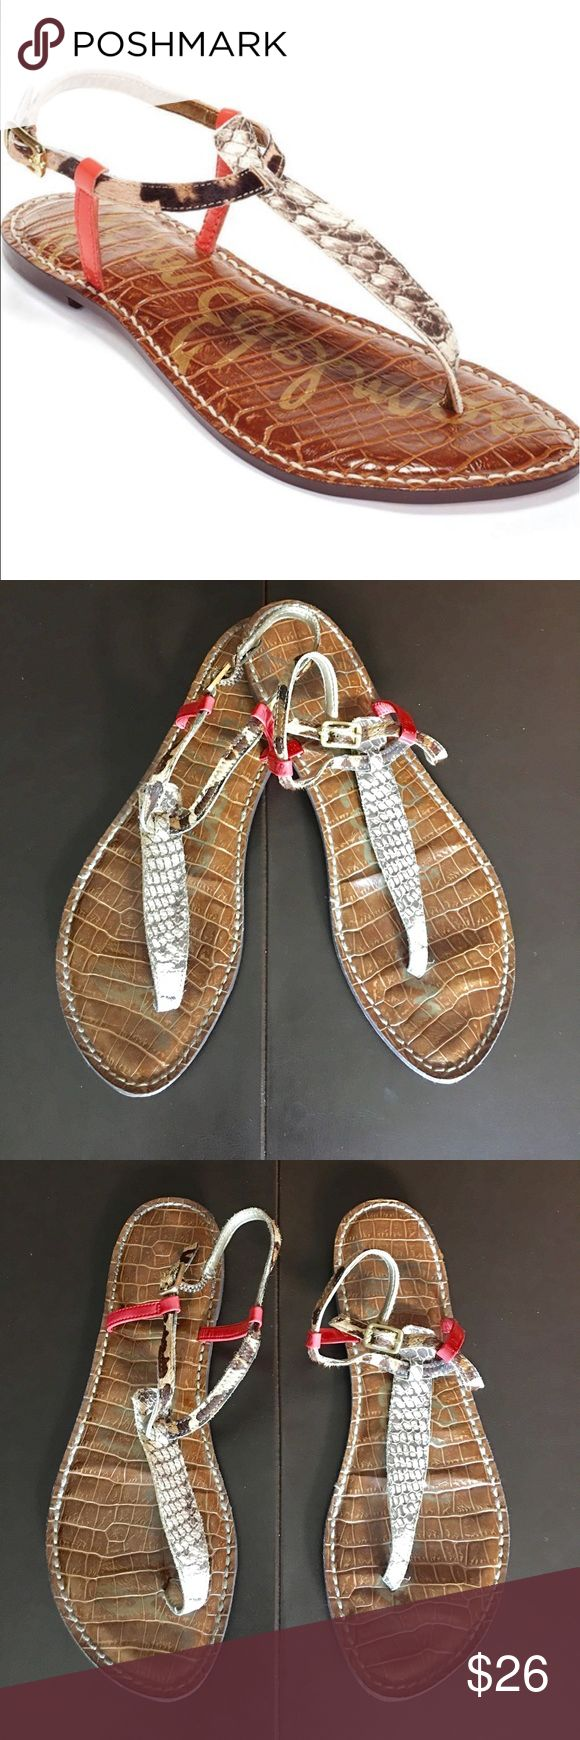 "Sam Edelman Gigi Sandal Variegated texturing puts a subtle exotic spin on a minimalist Thong sandal styled by an adjustable strap. Skin print and orange patent leather print. Measure 10.5""inches heel to toe. No damage or signs of wear to leather or soles Sam Edelman Shoes Sandals"